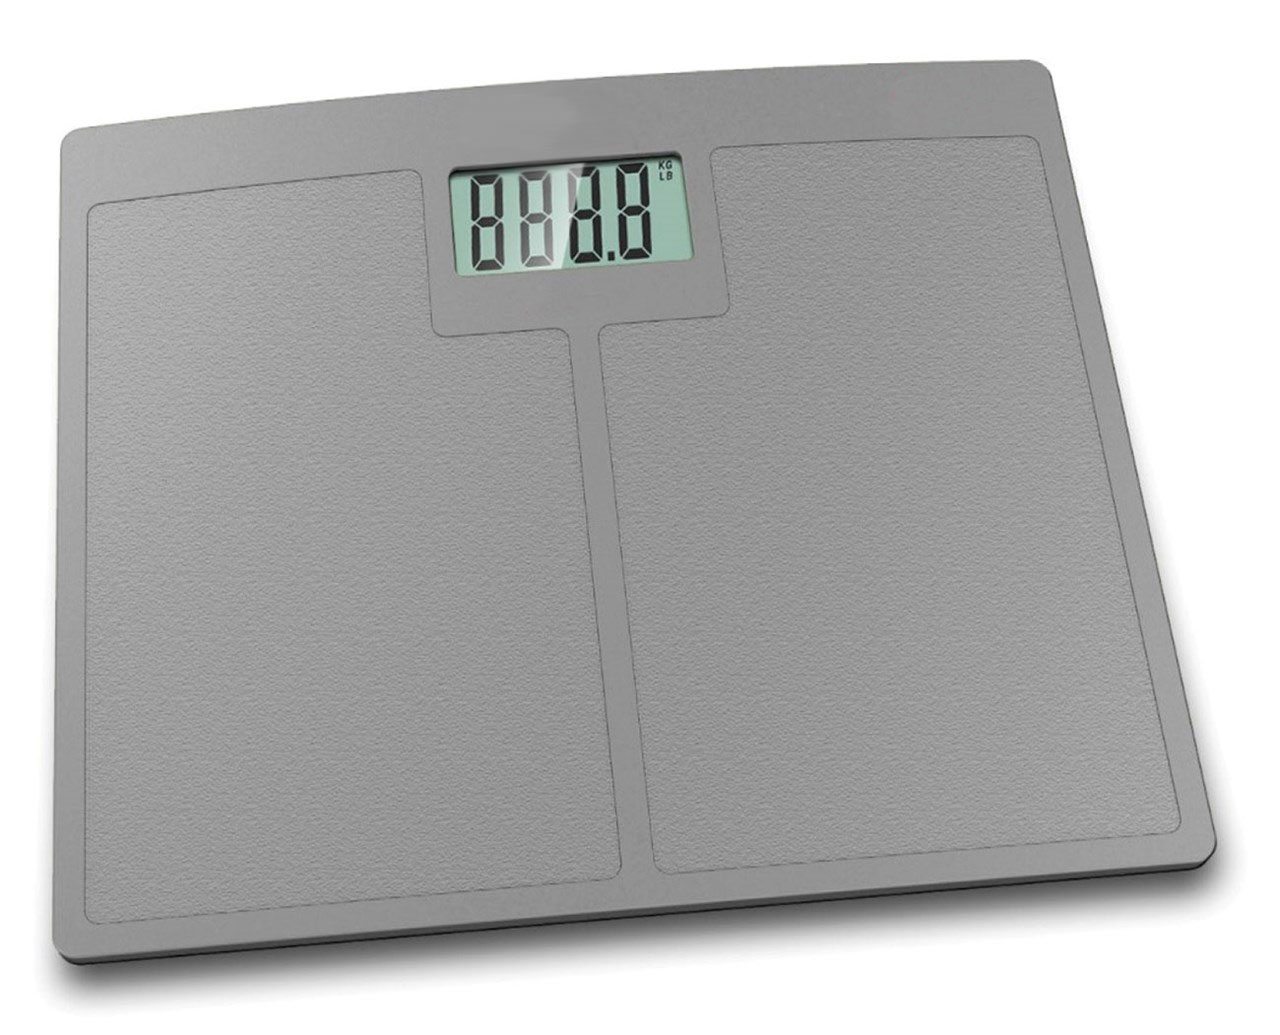 Talking Scale- English + Spanish- Weighs Up To 440lbs